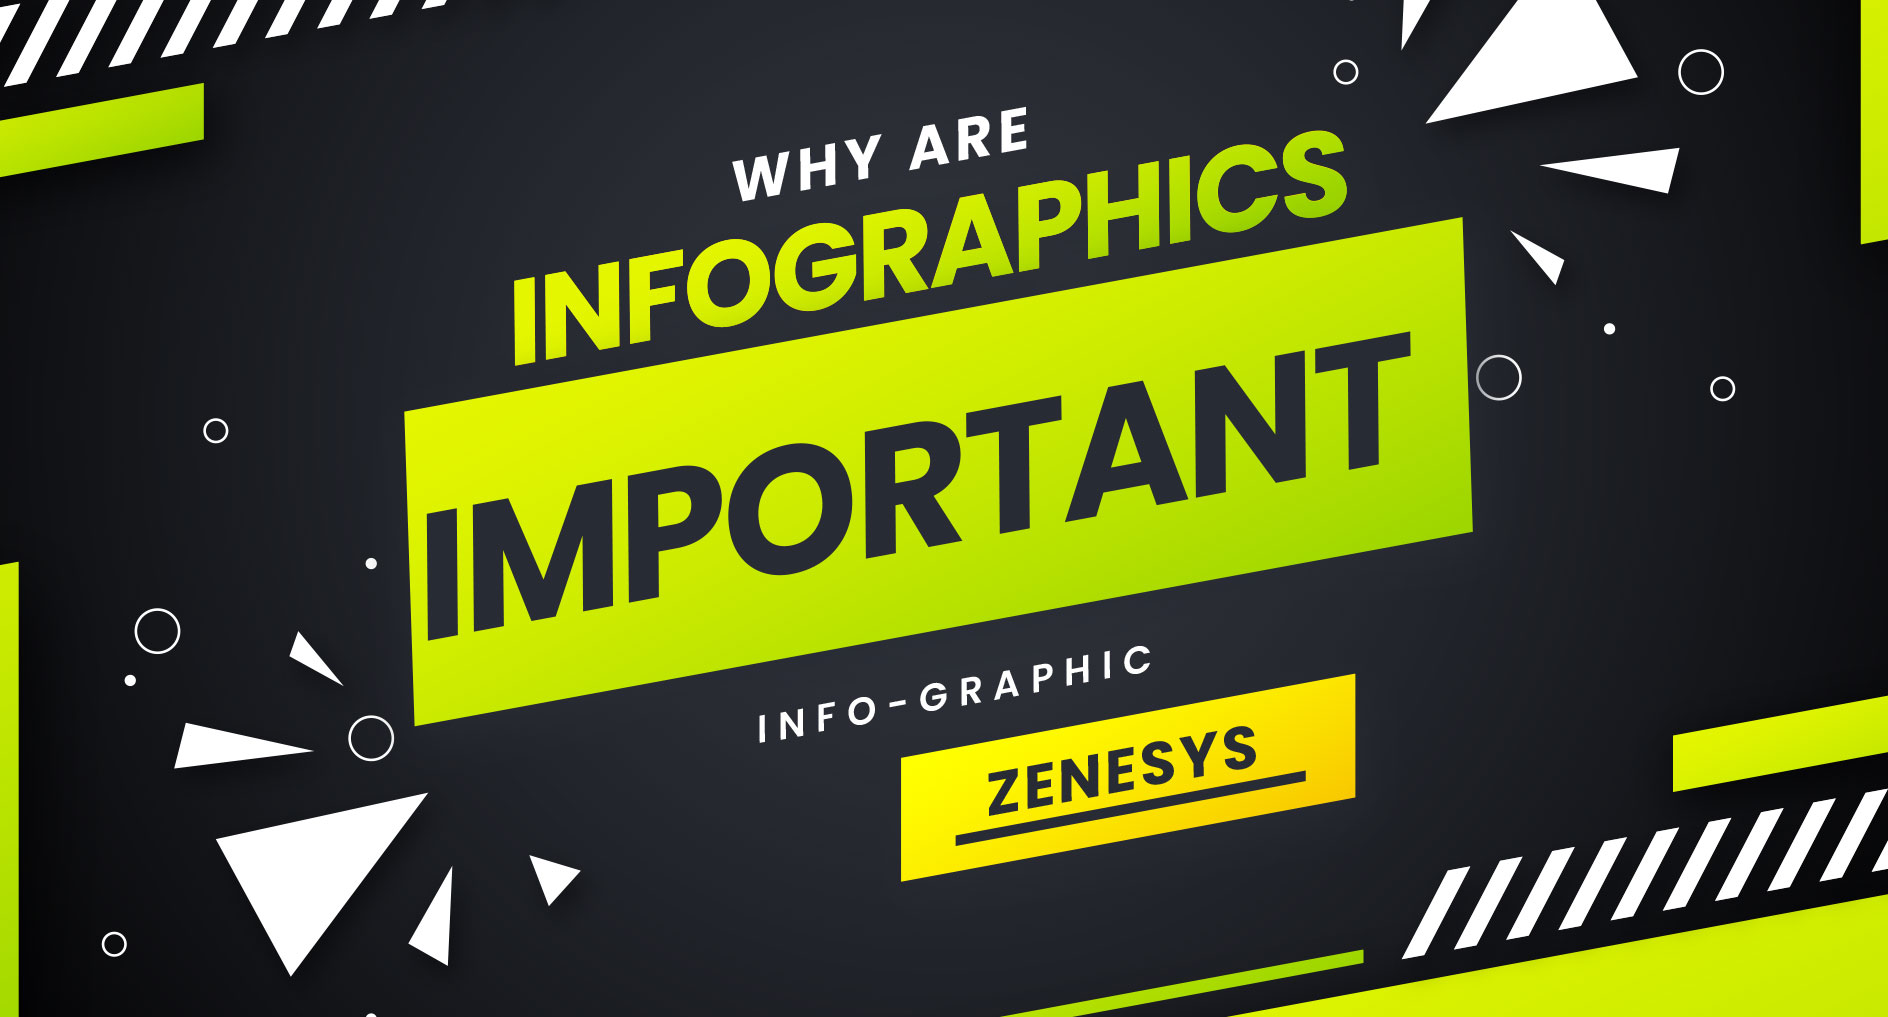 7 reasons Why Infographics are Important